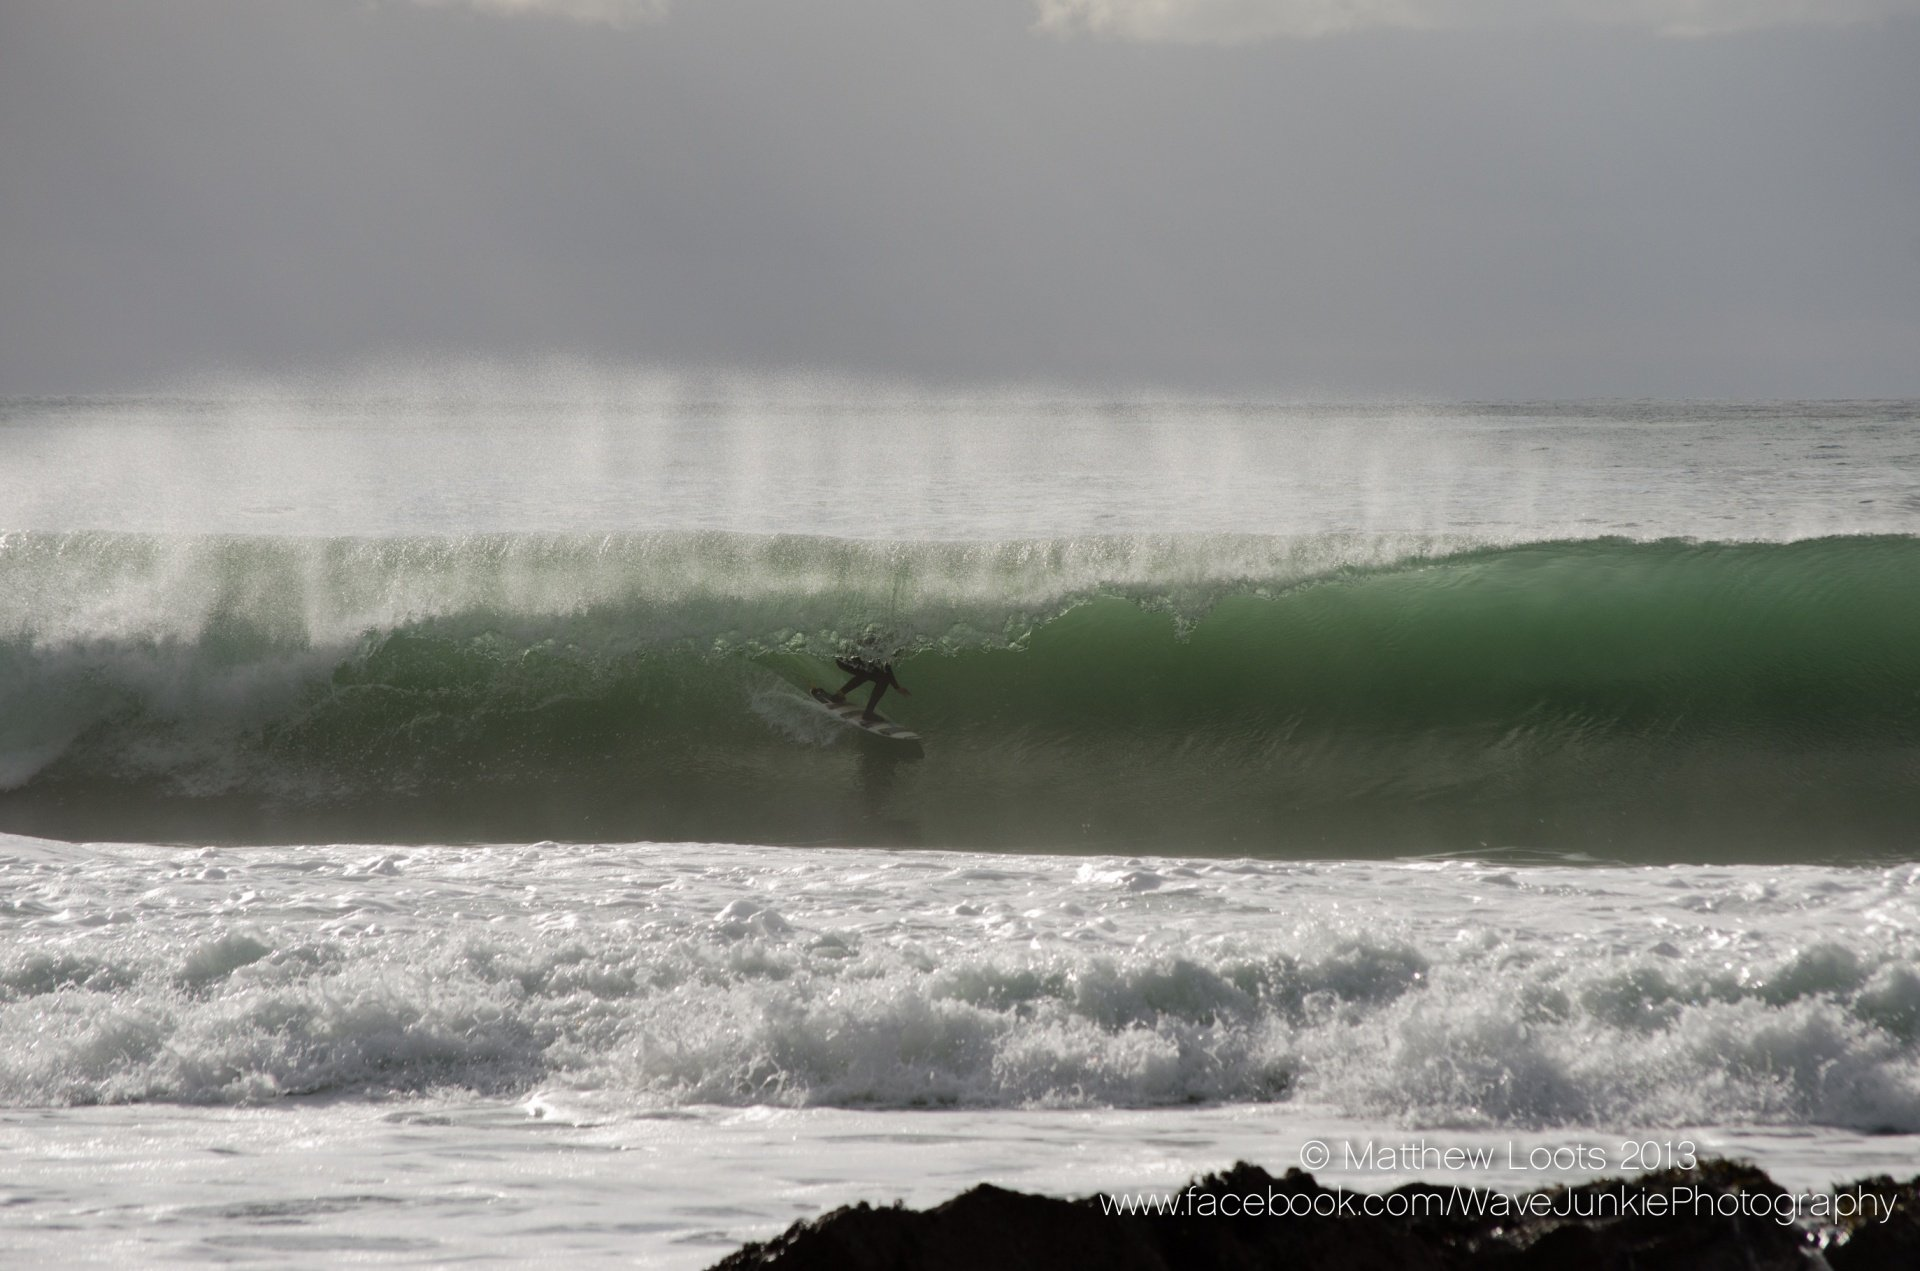 Matthew Loots's photo of Porthleven